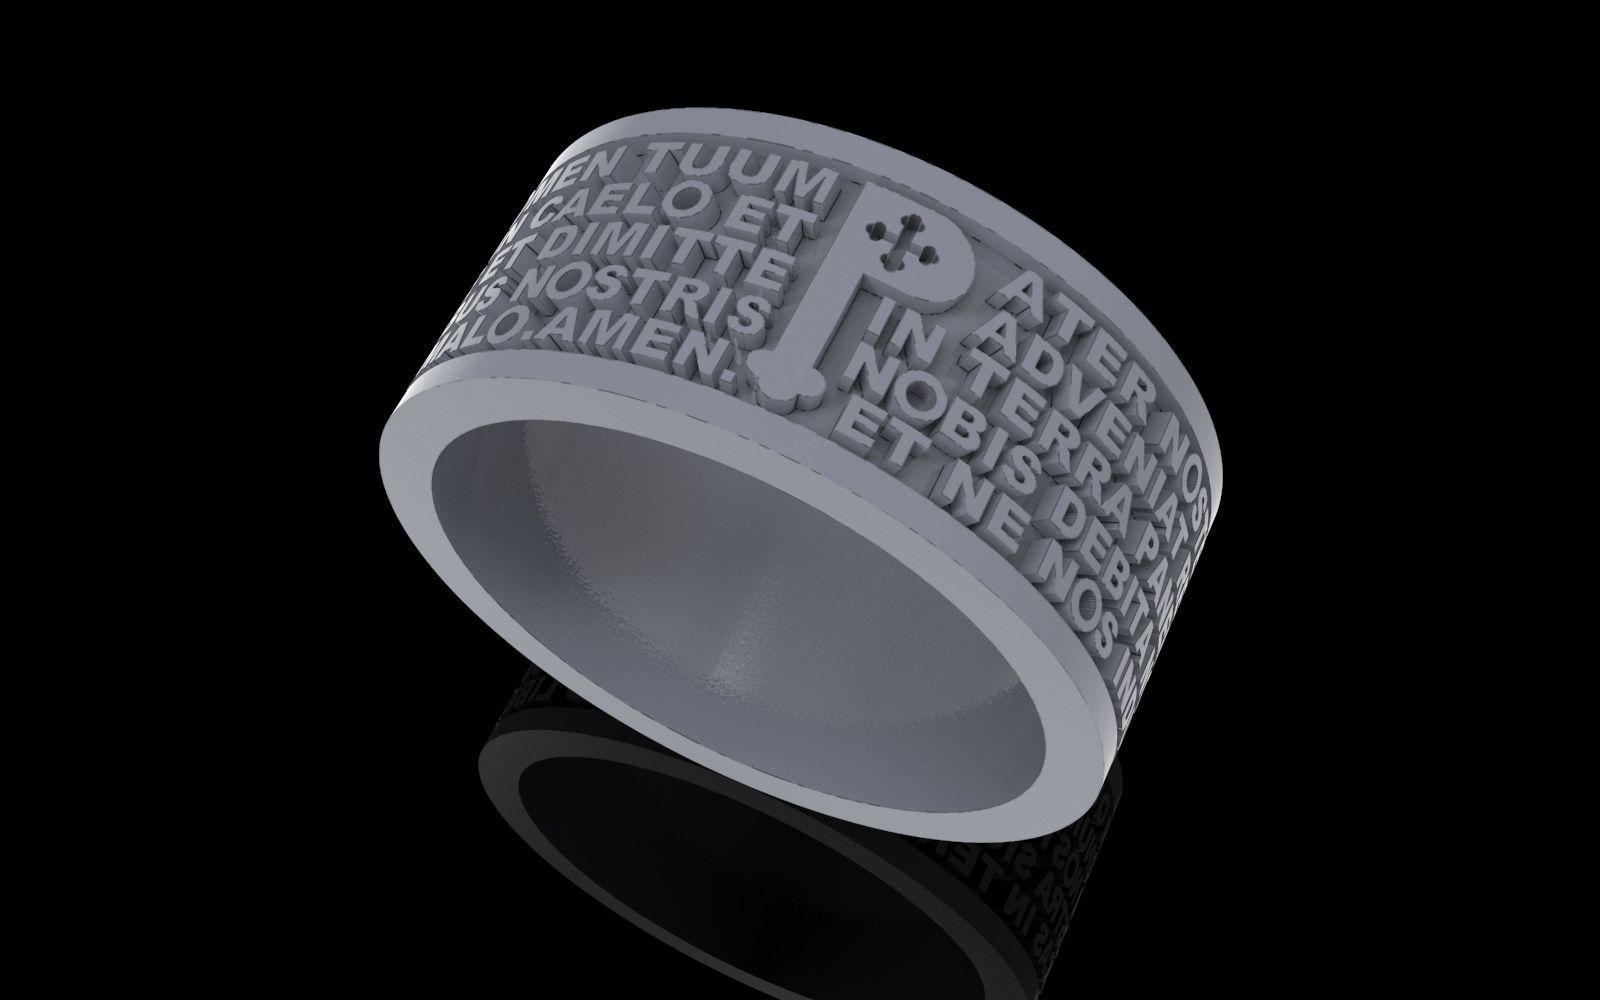 Christen Pater Noster  Our Fathers Prayer  ring